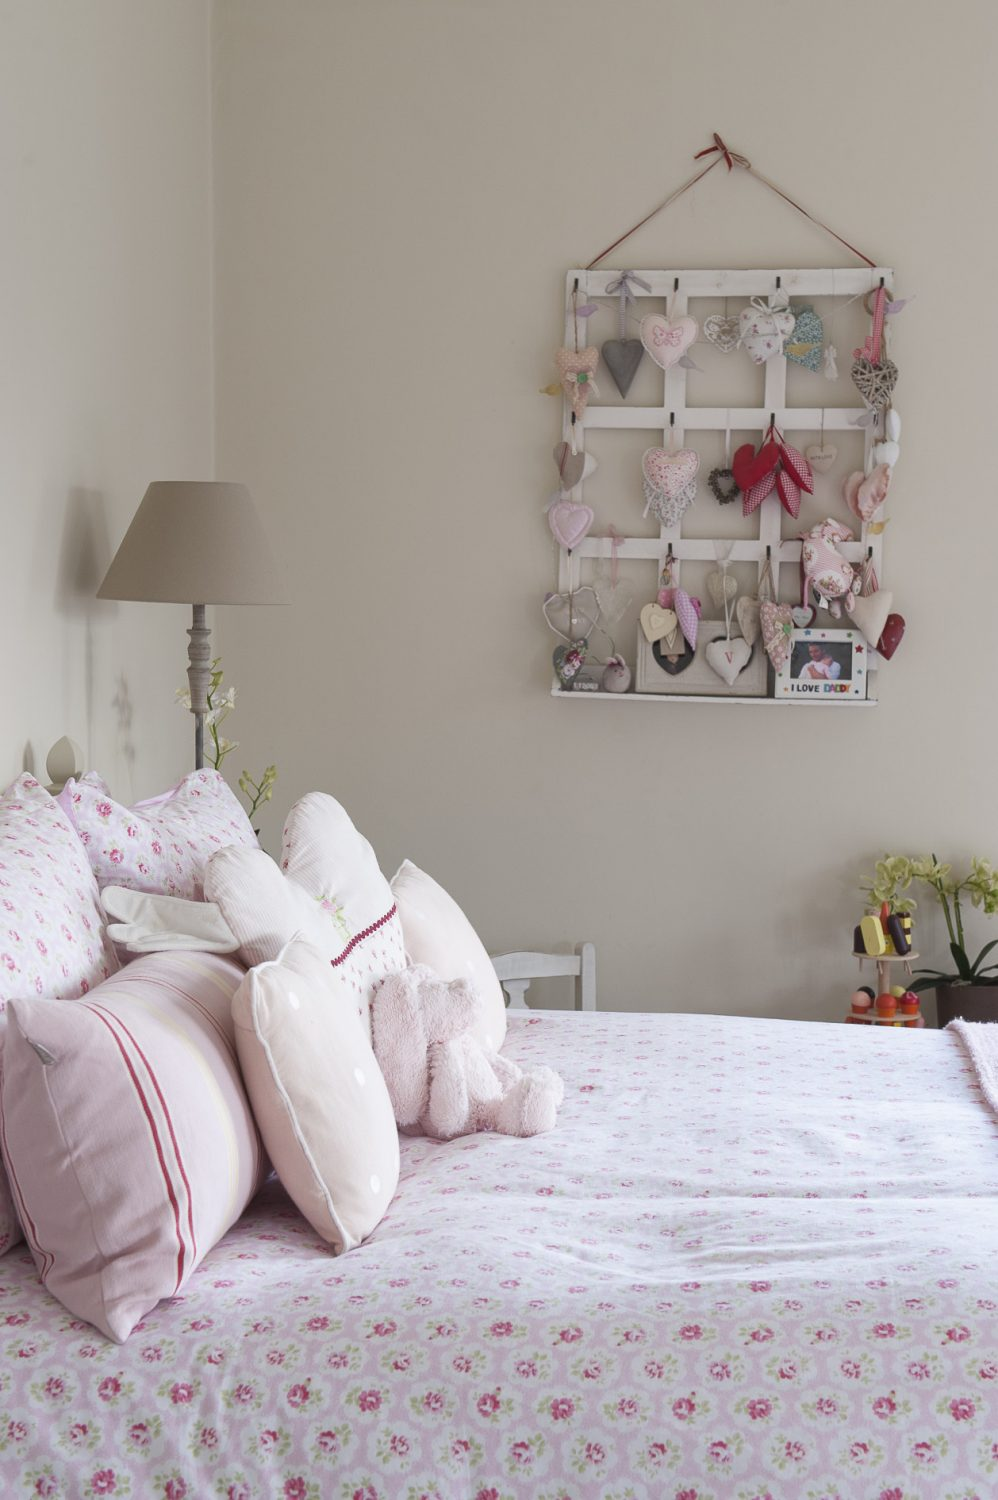 Victoria and David's daughter's room is furnished with a carved Laura Ashley bed, dressing table and an antique armoire, and accessorised with Cath Kidston rosebud bedlinen, a Kate Forman floral print fabric for the blinds and vintage painted tables and chairs